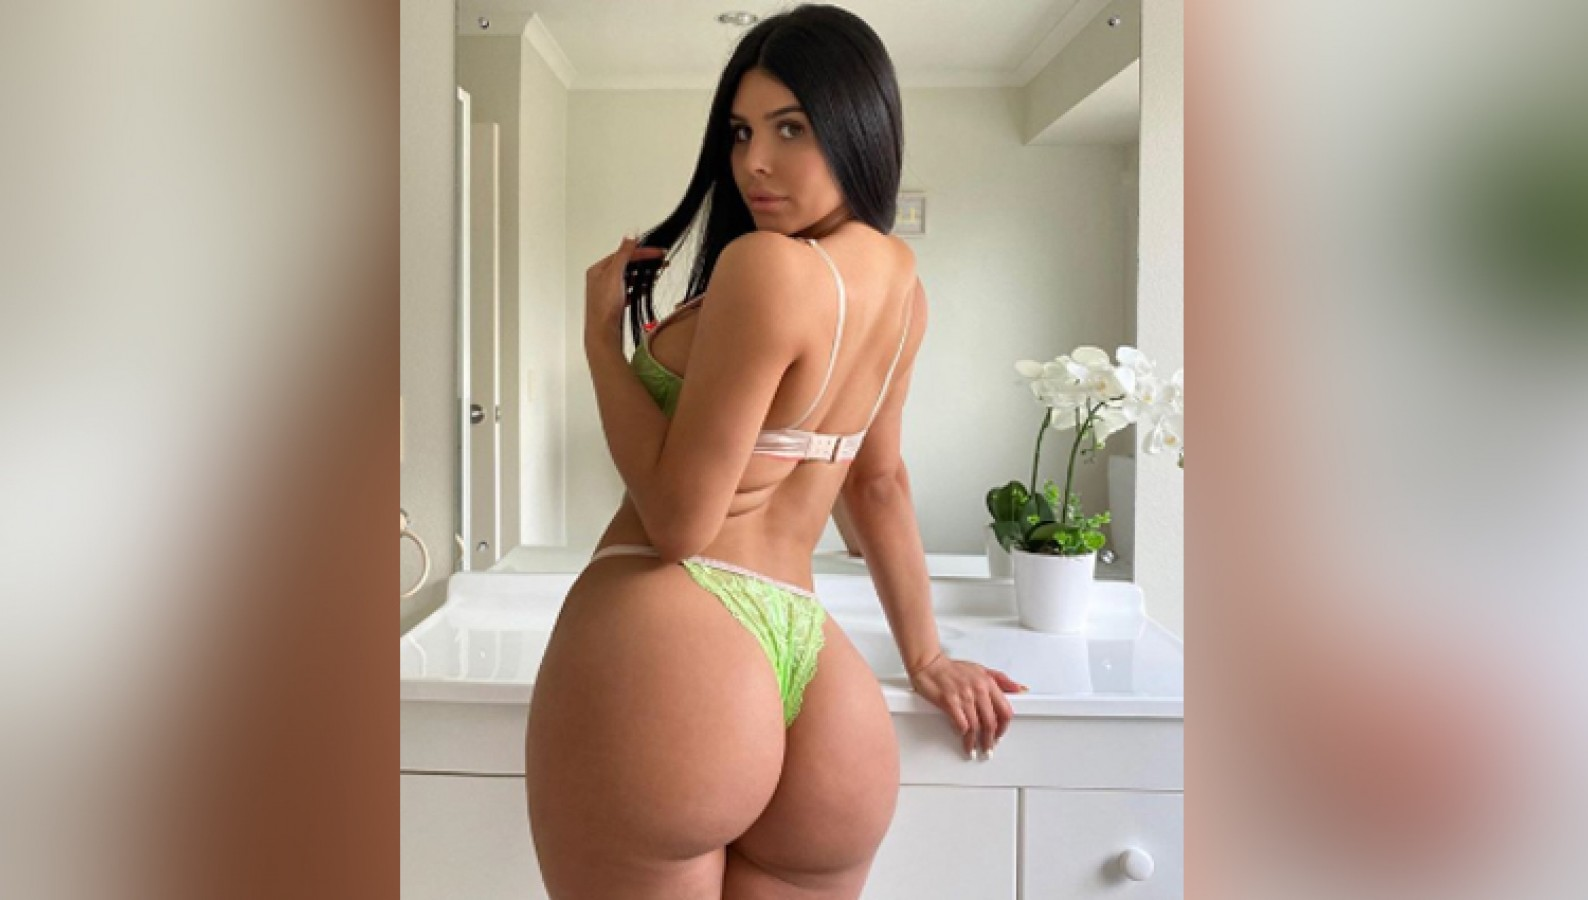 Adrienne Porn Actress lily adrianne wreaks havoc on social media with her sexy